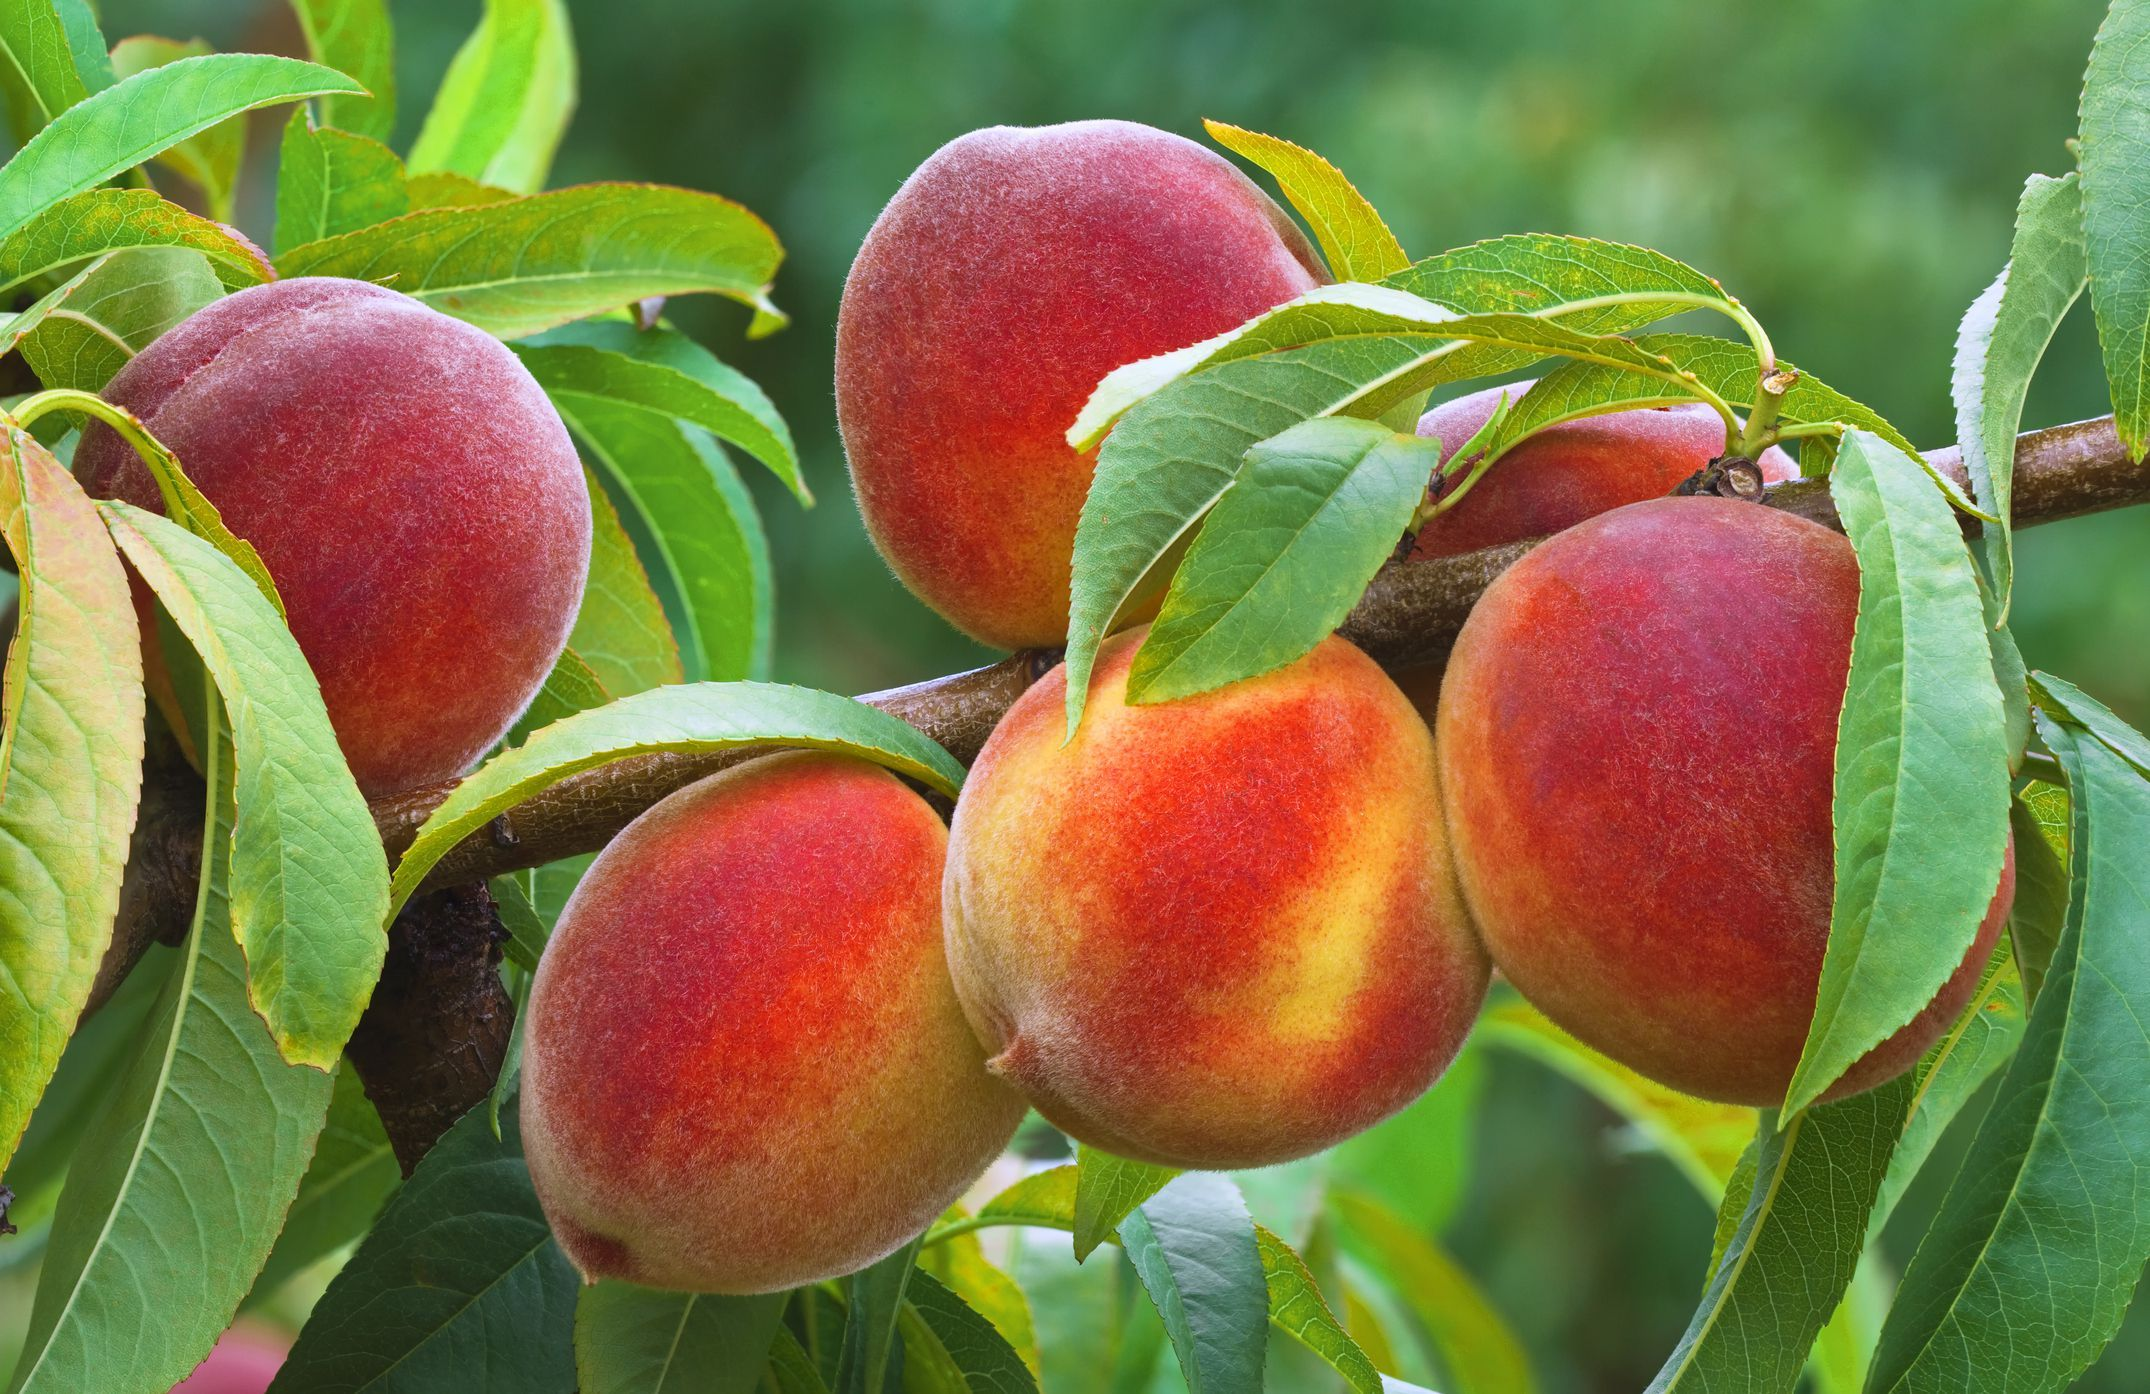 After You Finish Your Peach Don T Throw Away That Seed By Planting It You Can Nurture A Tree That Will Eventually Bear Frui Growing Fruit Fruit Fruit Plants